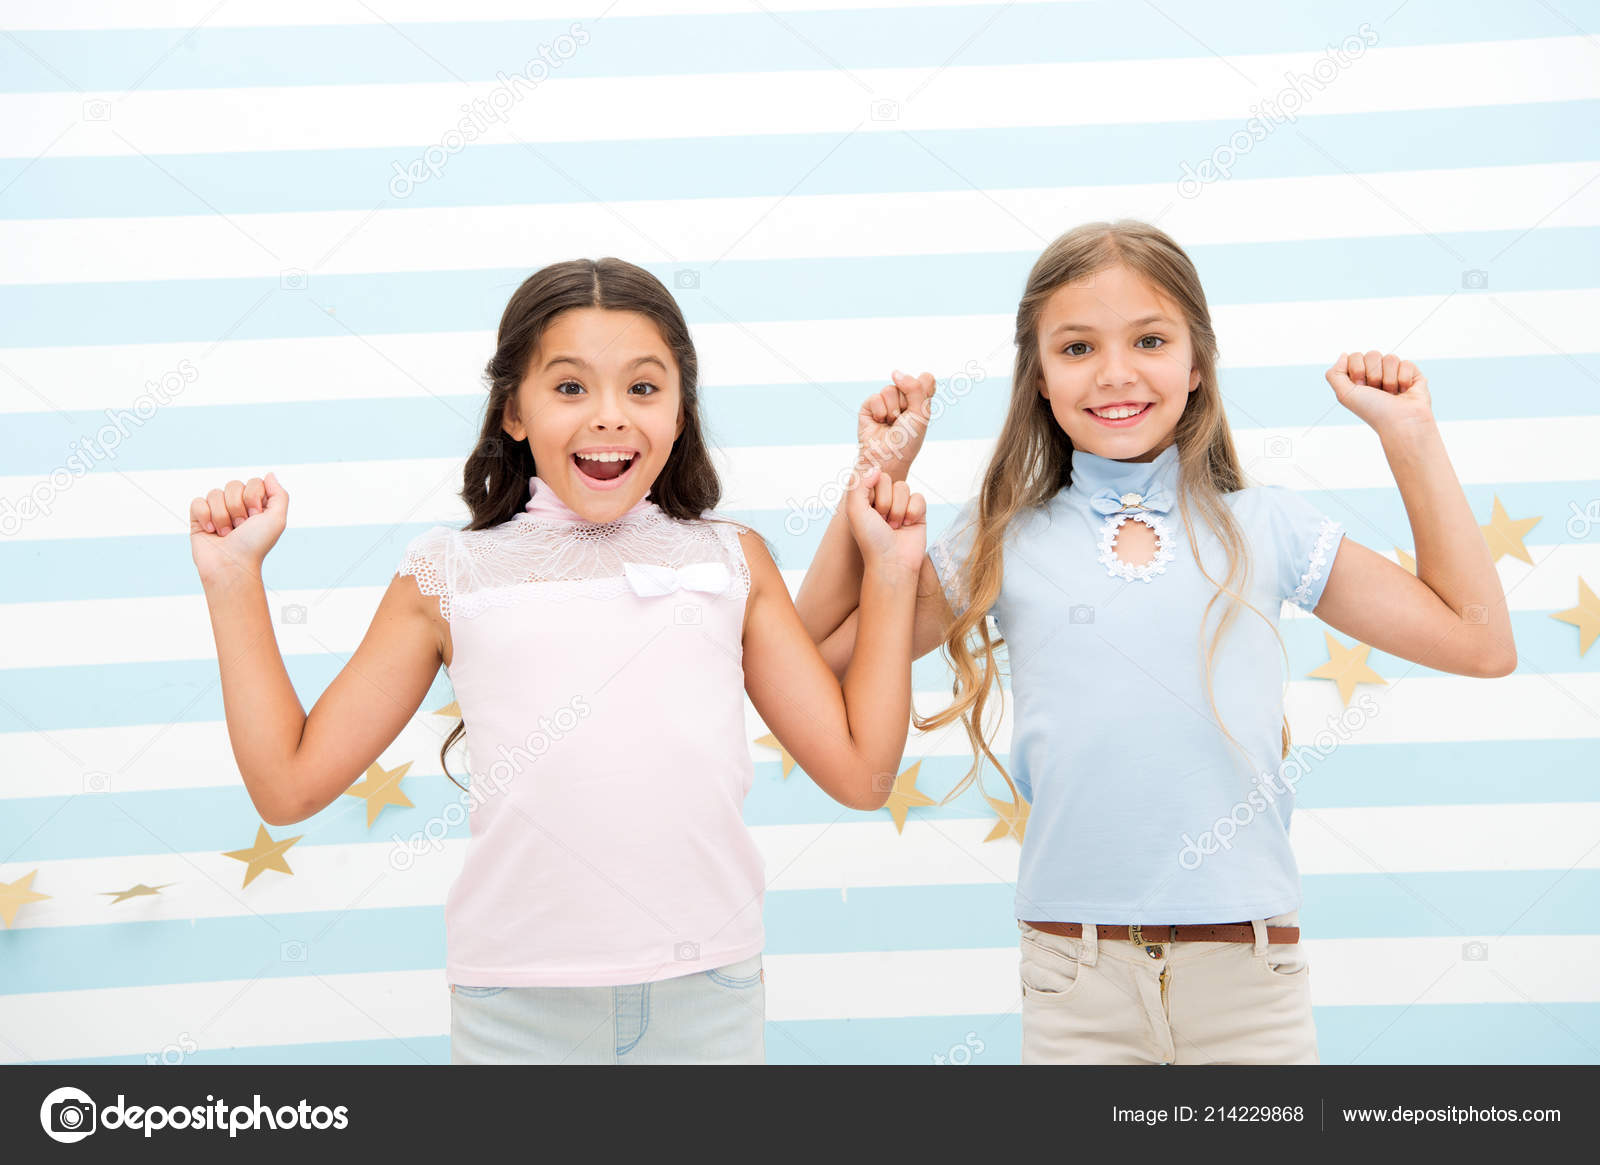 The Surprising News About Childrens >> Thrilled Moments Together Kids Schoolgirls Preteens Happy Together